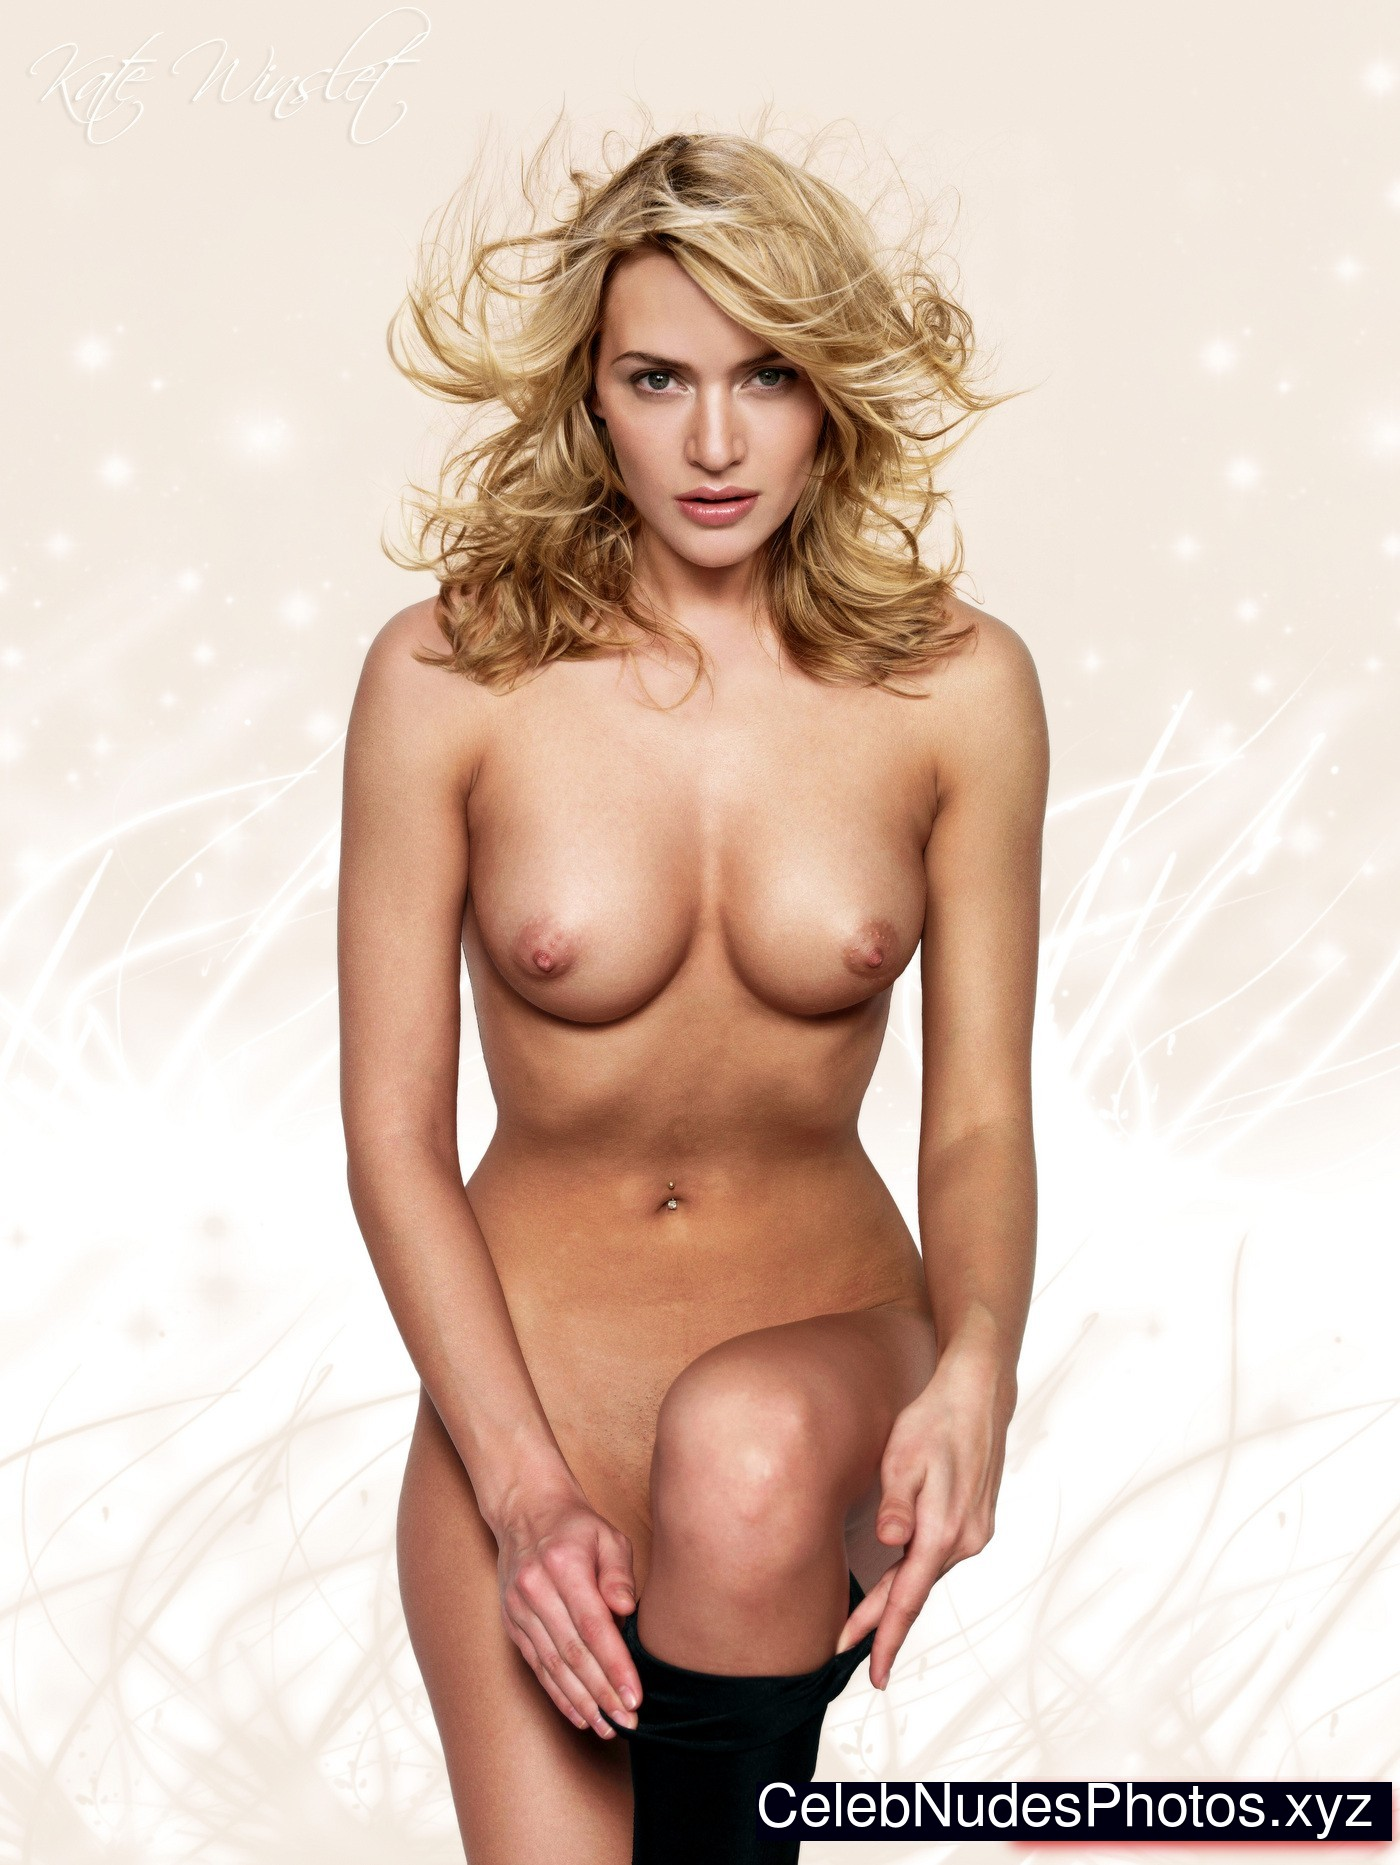 Excited kate winslet nude celebrity